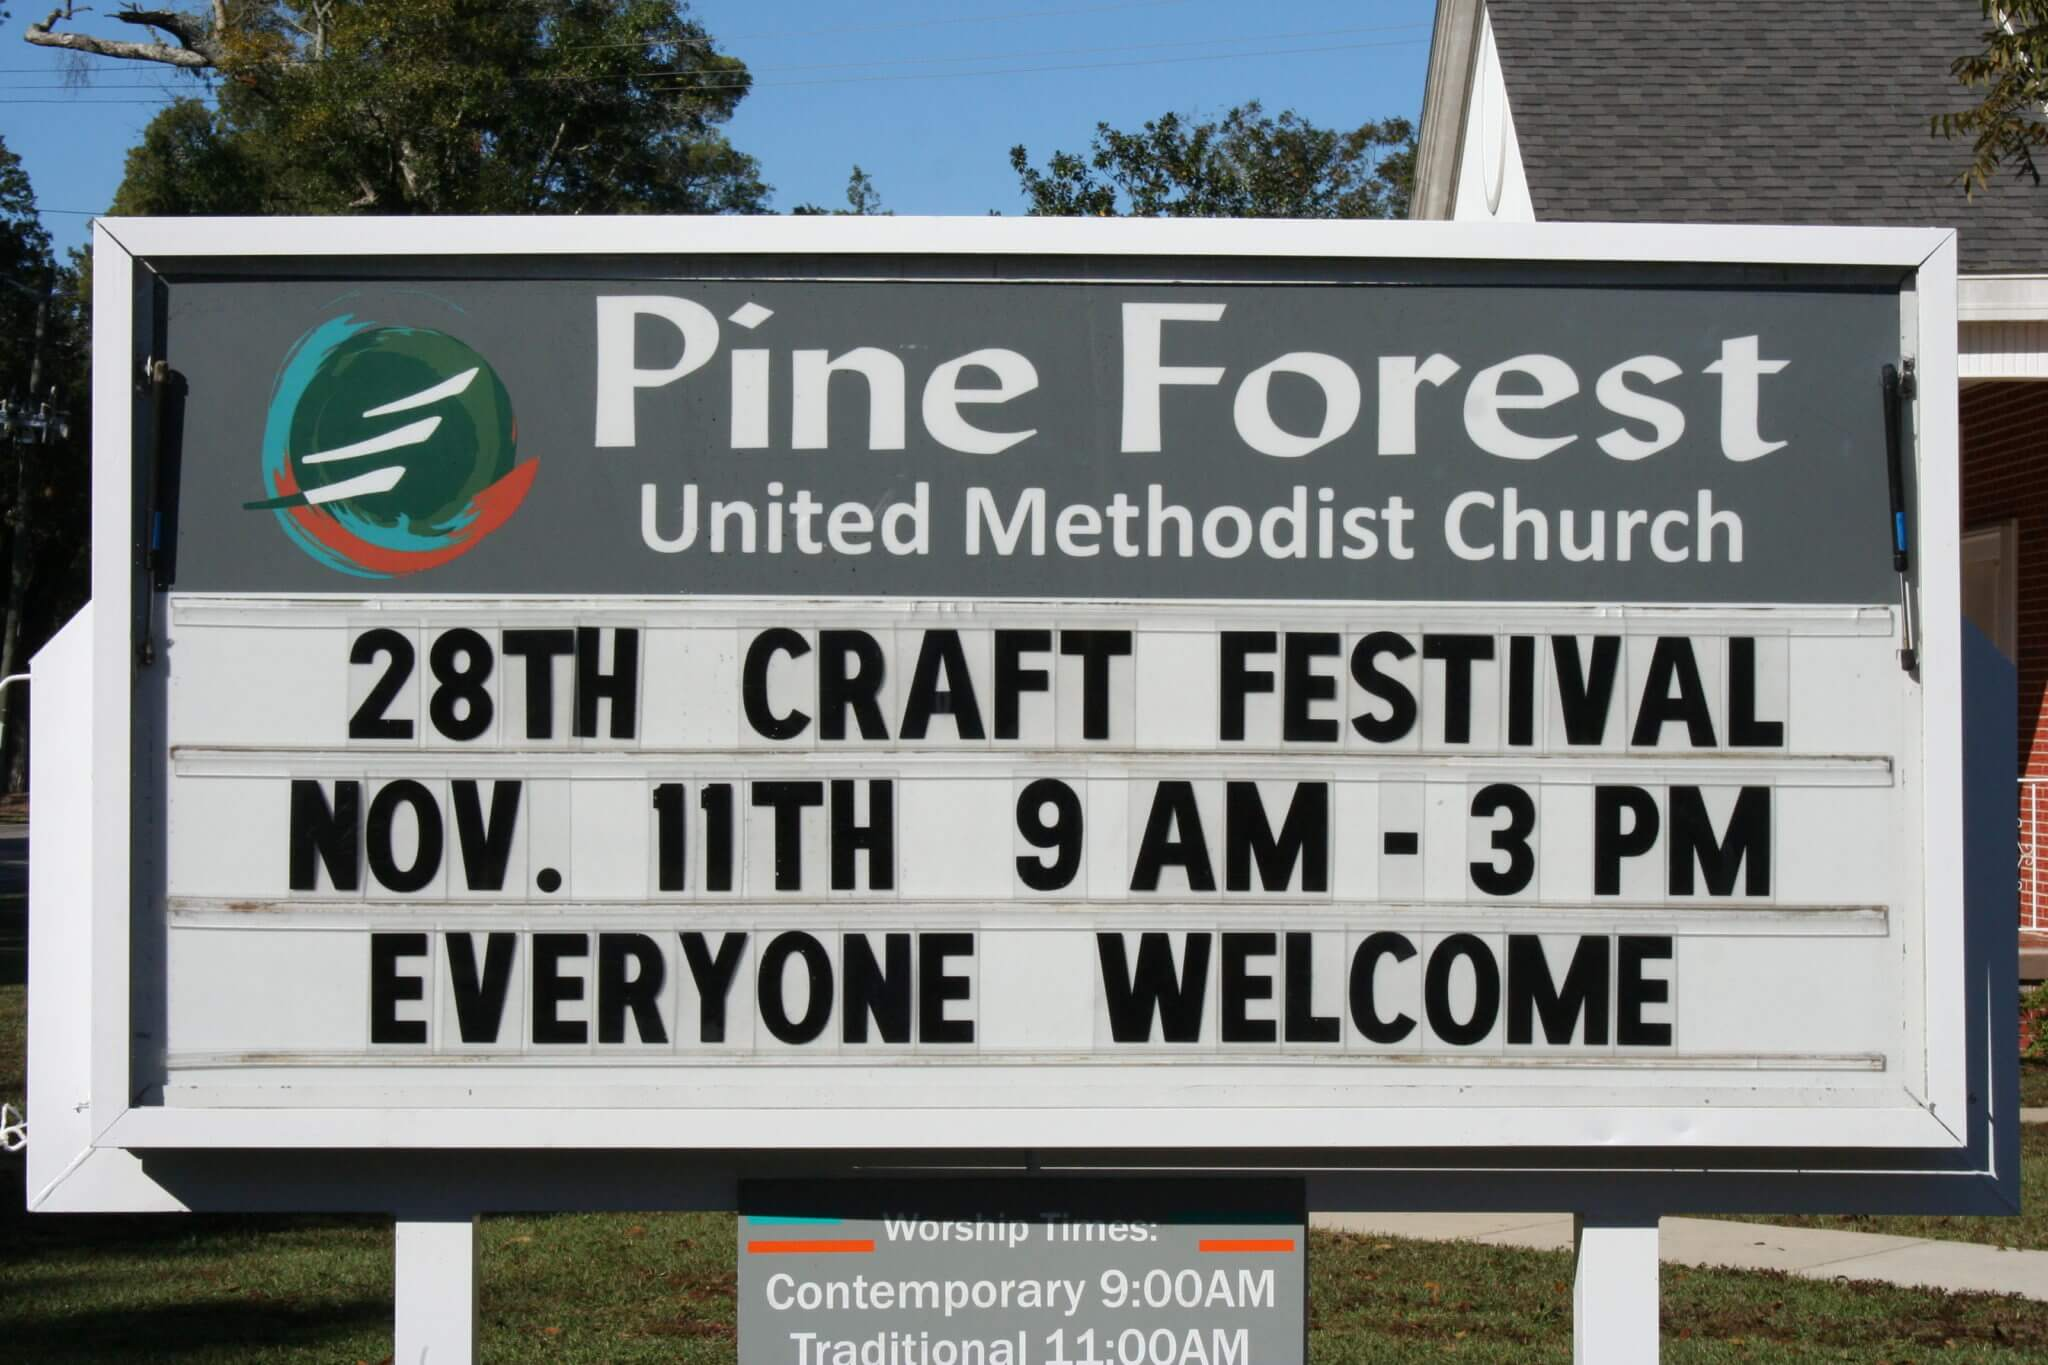 Marquee for the Pine Forest United Methodist Church Arts & Crafts Festival & Car Show